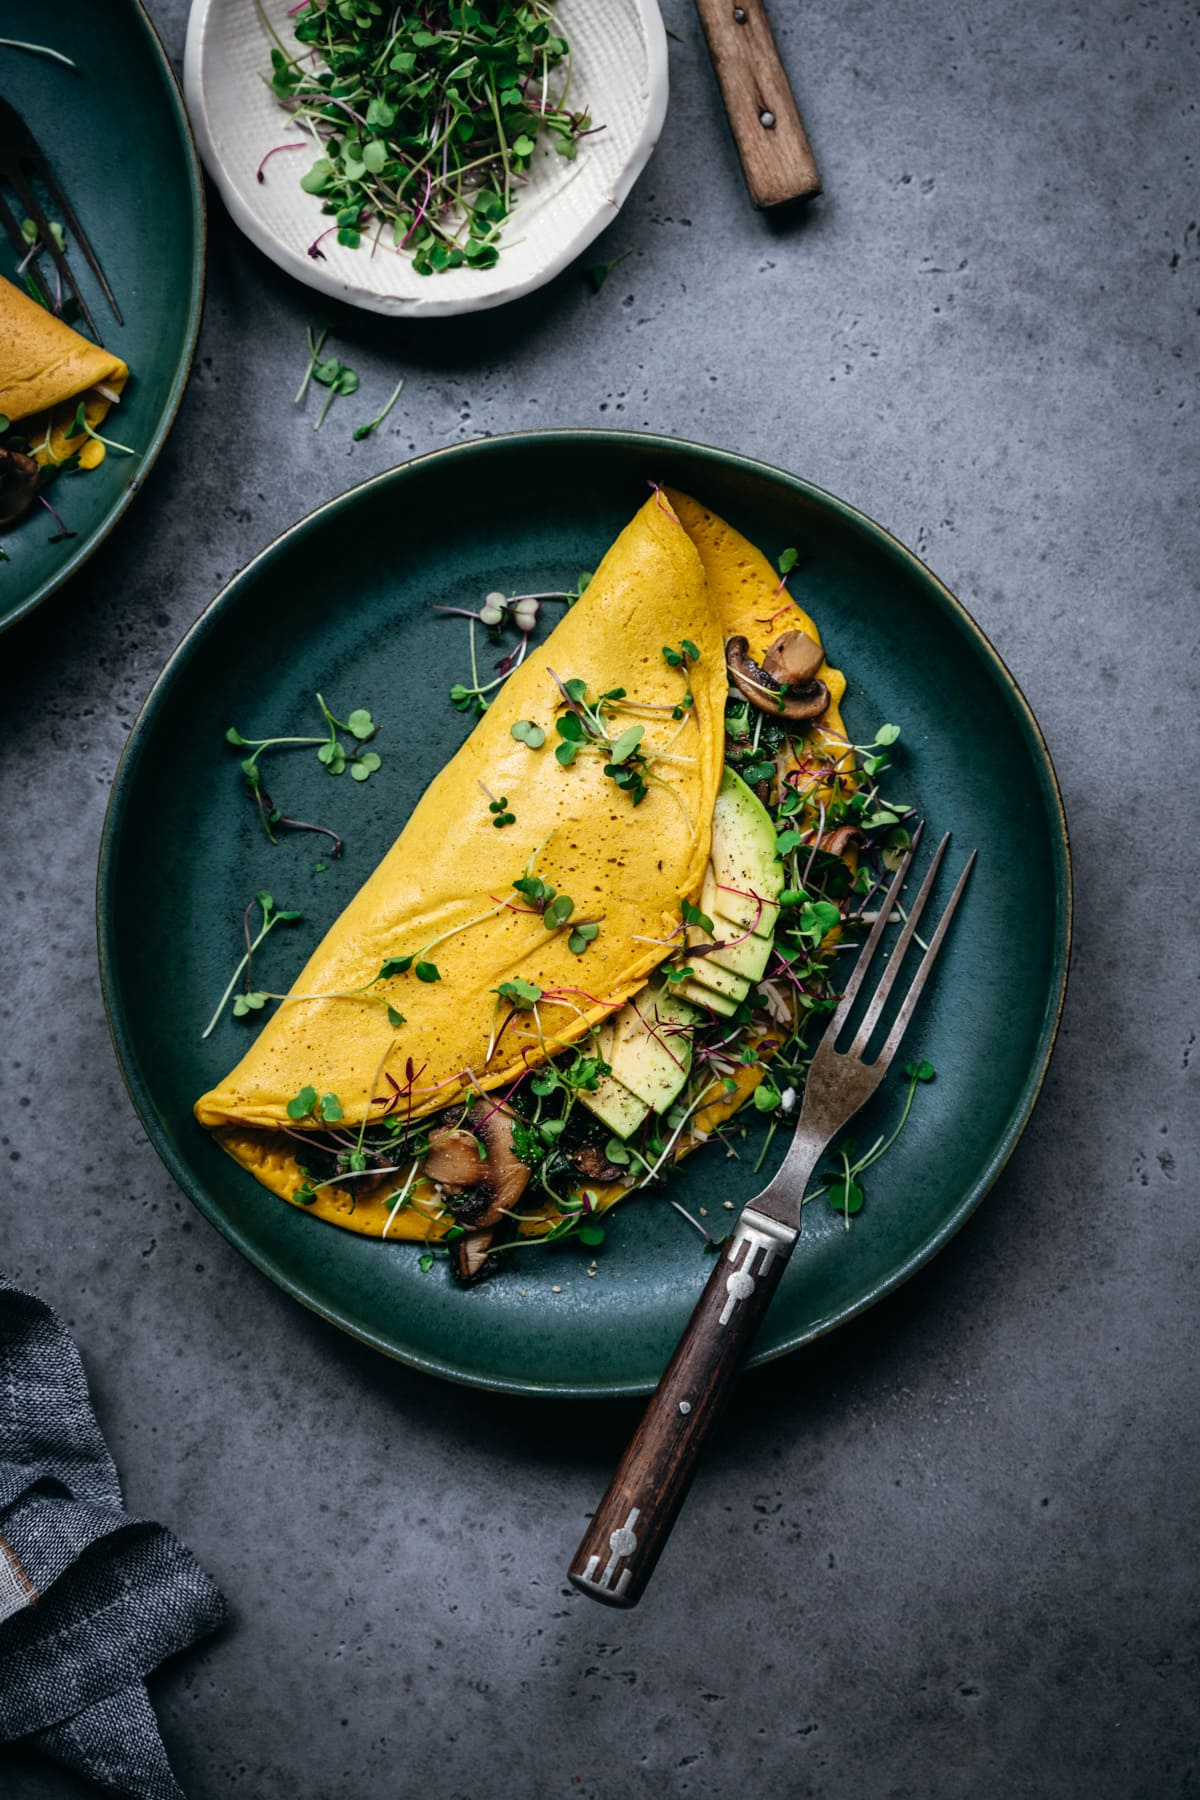 overhead view of vegan chickpea flour omelette with mushroom and spinach filling on teal plate.